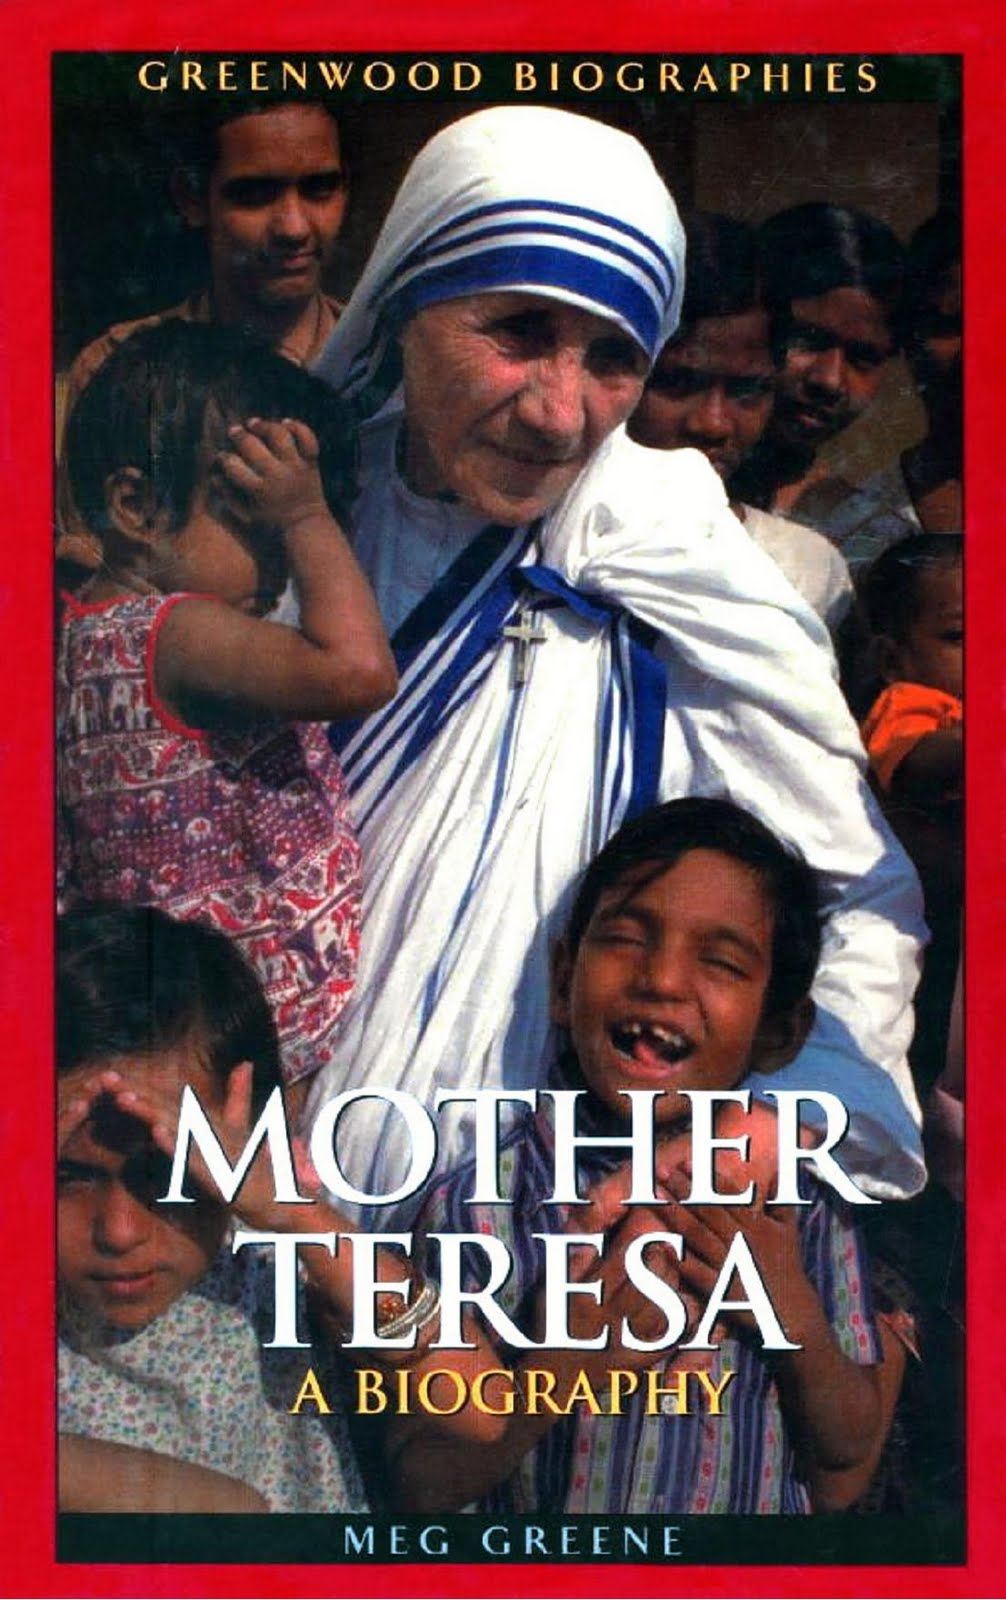 a biography of mother teresa Mother teresa biographical questions and answers on mother teresa m other teresa was born agnes gonxha bojaxhiu in skopje , macedonia, on august 26, 1910 her family was of albanian descent at the age of twelve, she felt strongly the call of god she knew she had to be a missionary to spread the love of christ.